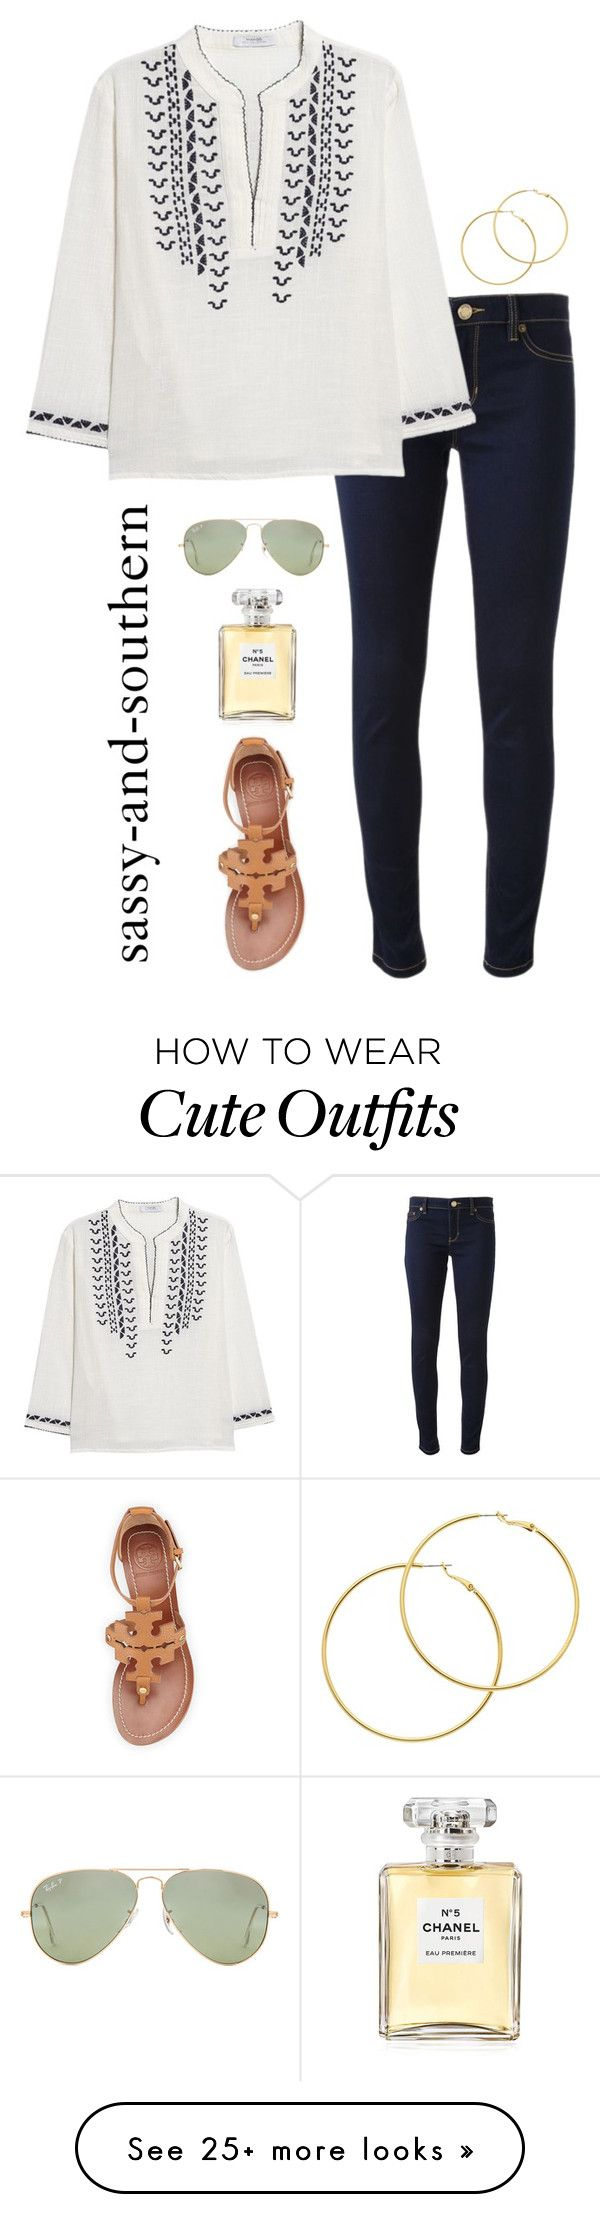 cute dinner outfit by sassy-and-southern on Polyvore featuring Michael Kors, MANGO, Tory Burch, Melissa Odabash, Chanel, Ray-Ban and ToryBurch